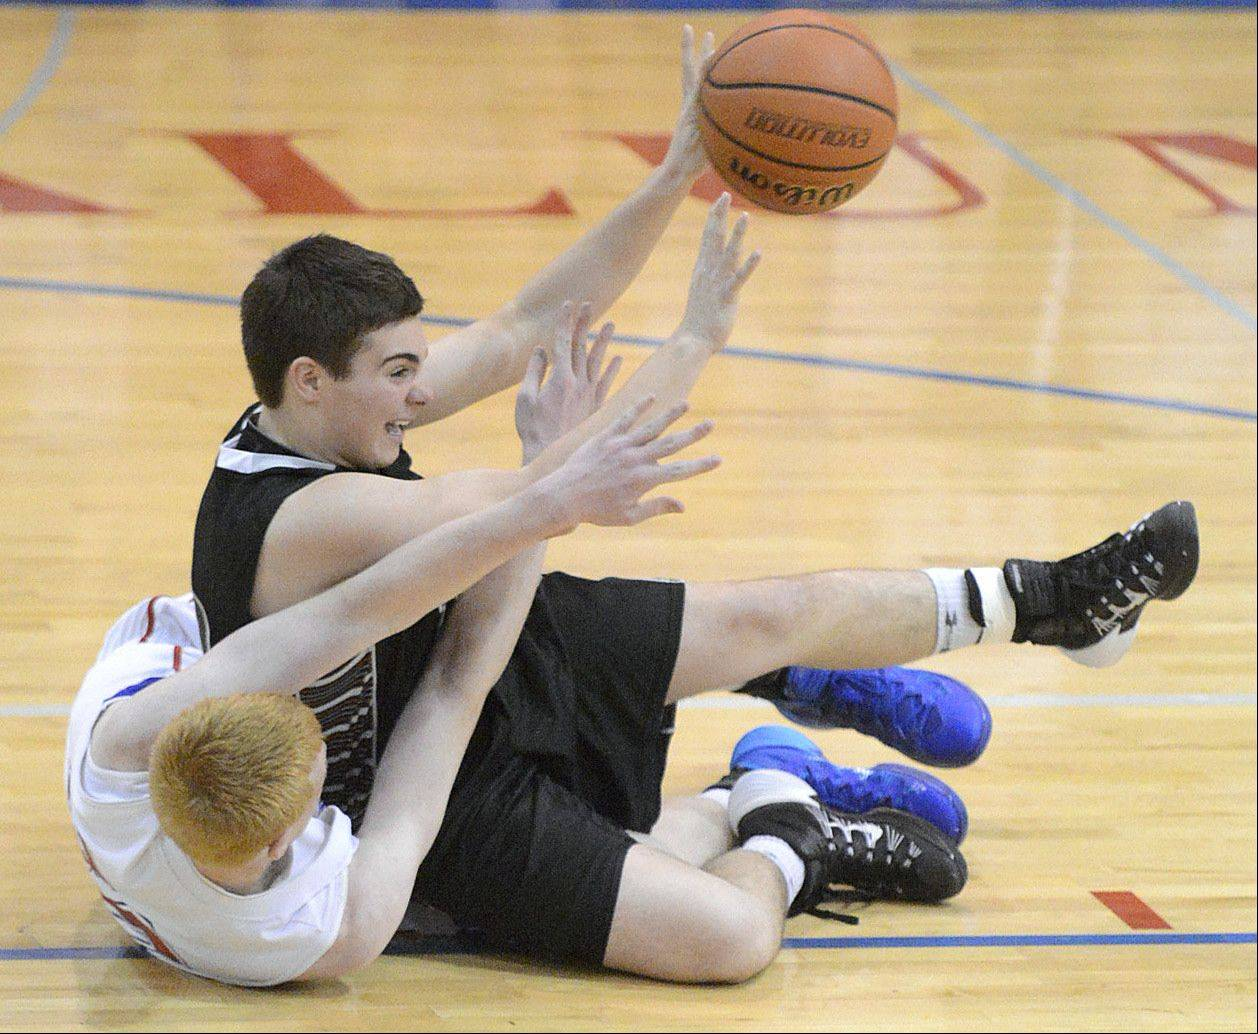 Carlson, Kaneland win another in final seconds